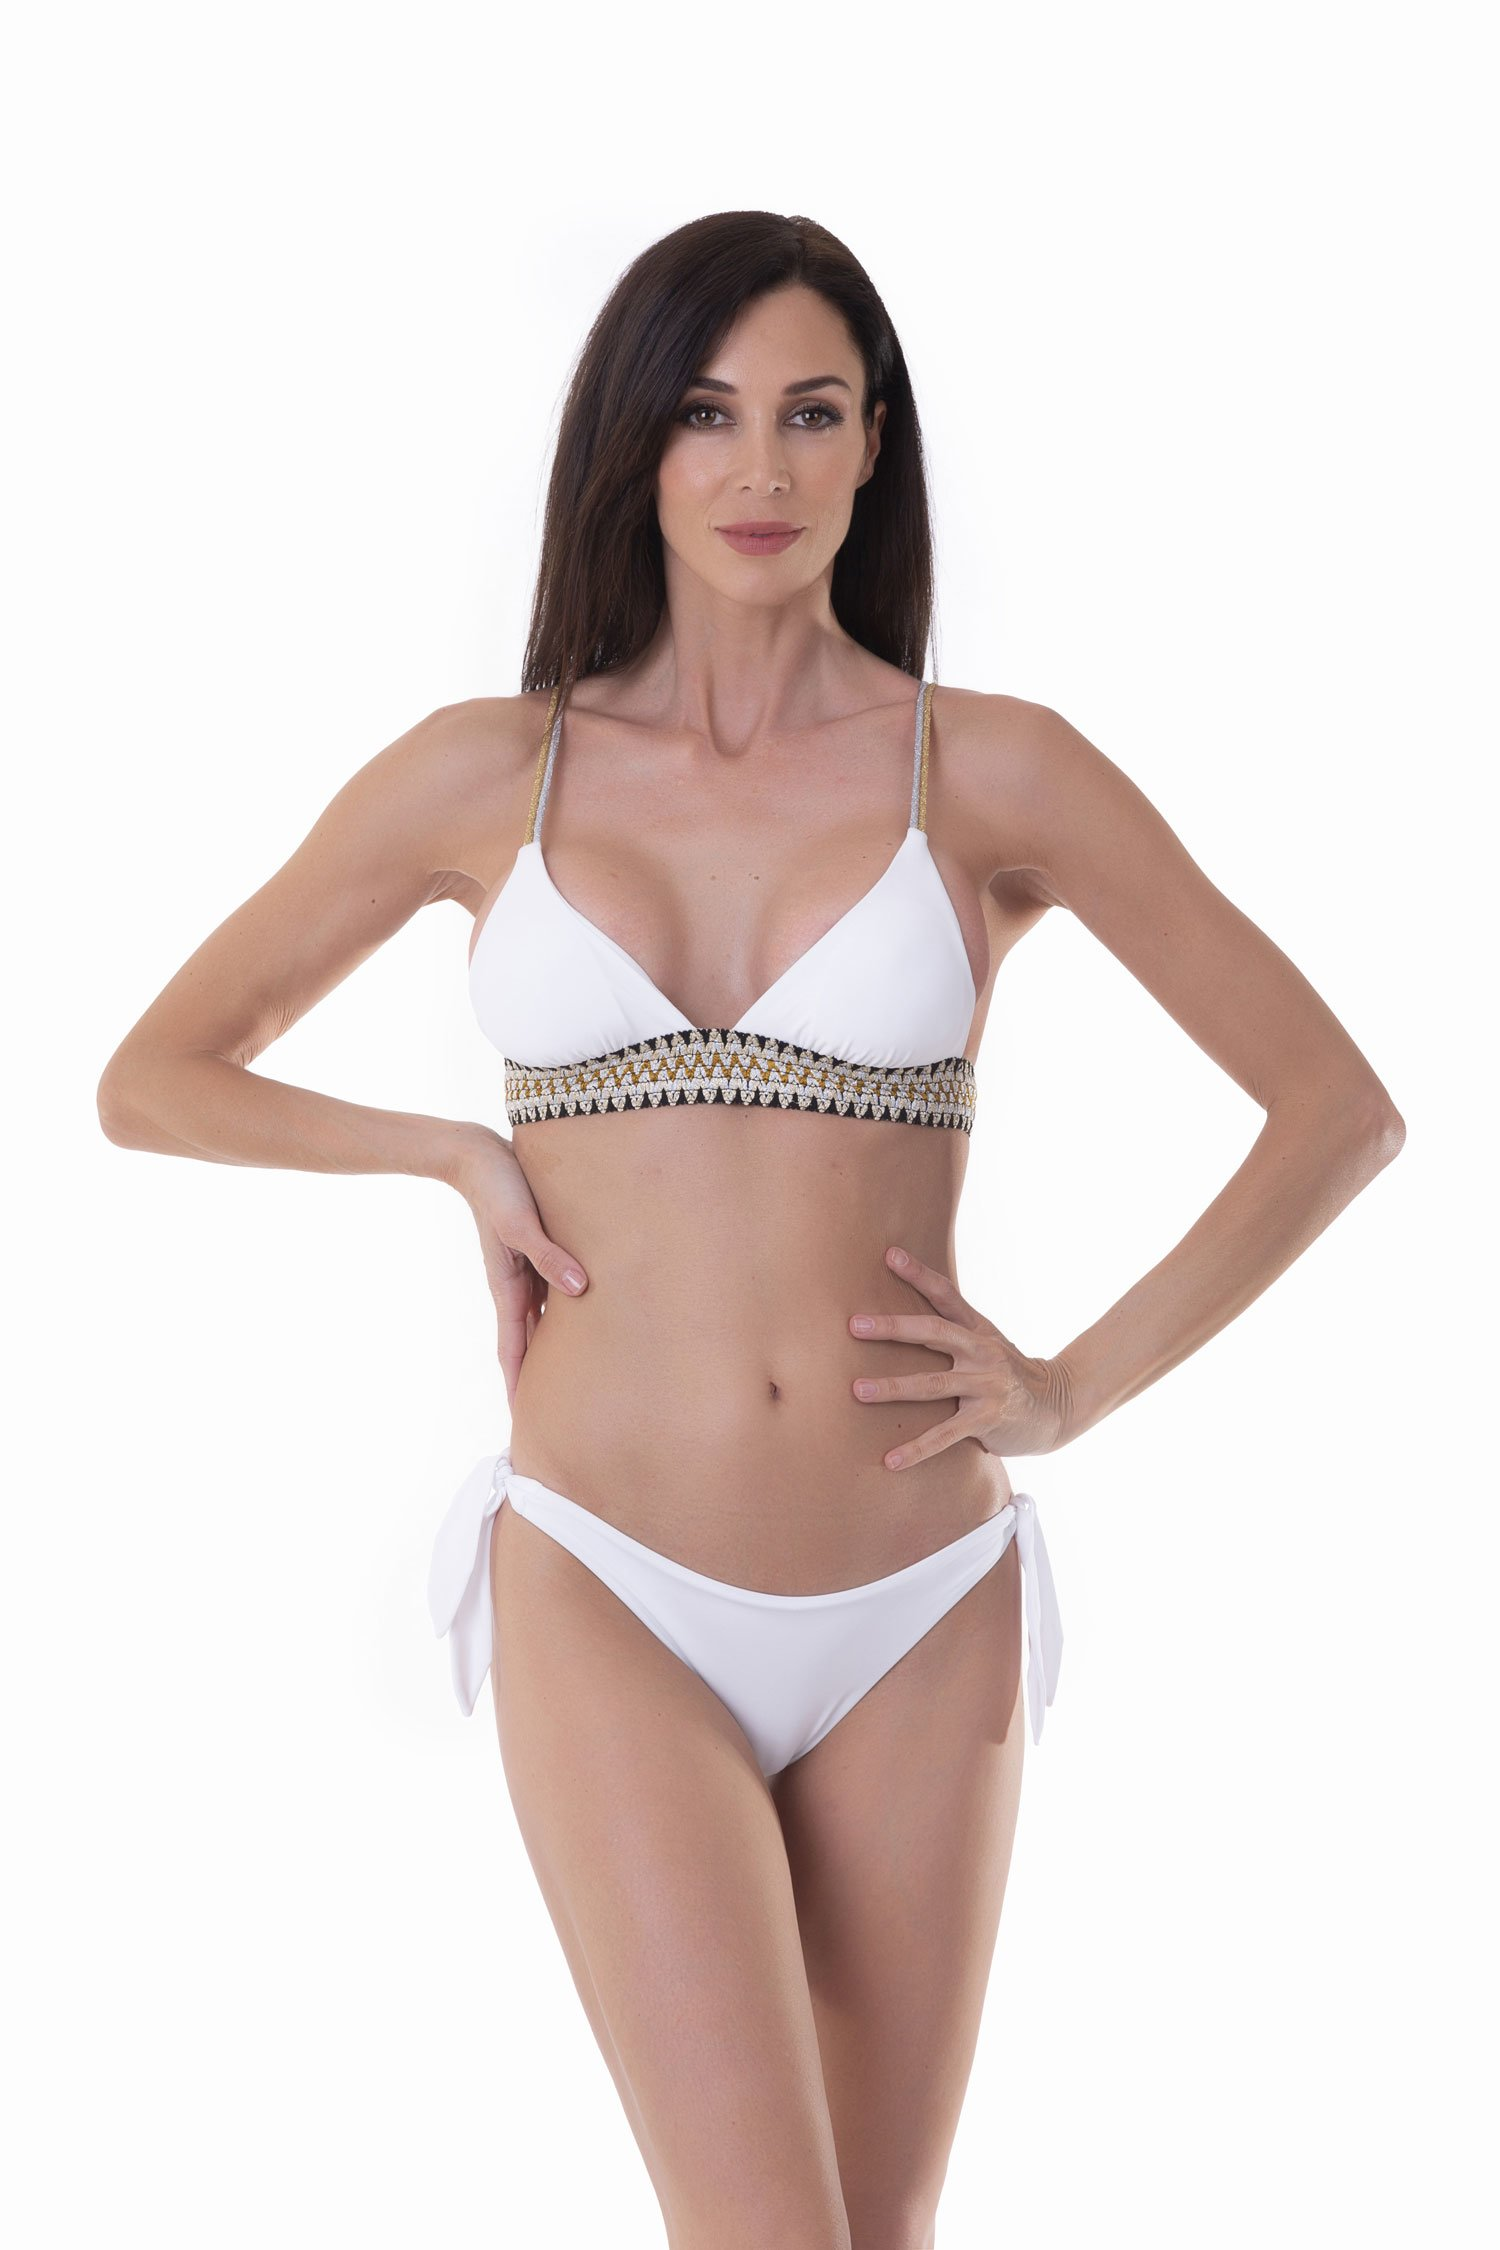 TRIANGLE  BIKINI WITH LUREX ELASTICS AND SLIP WITH LACES - Bianco White 001